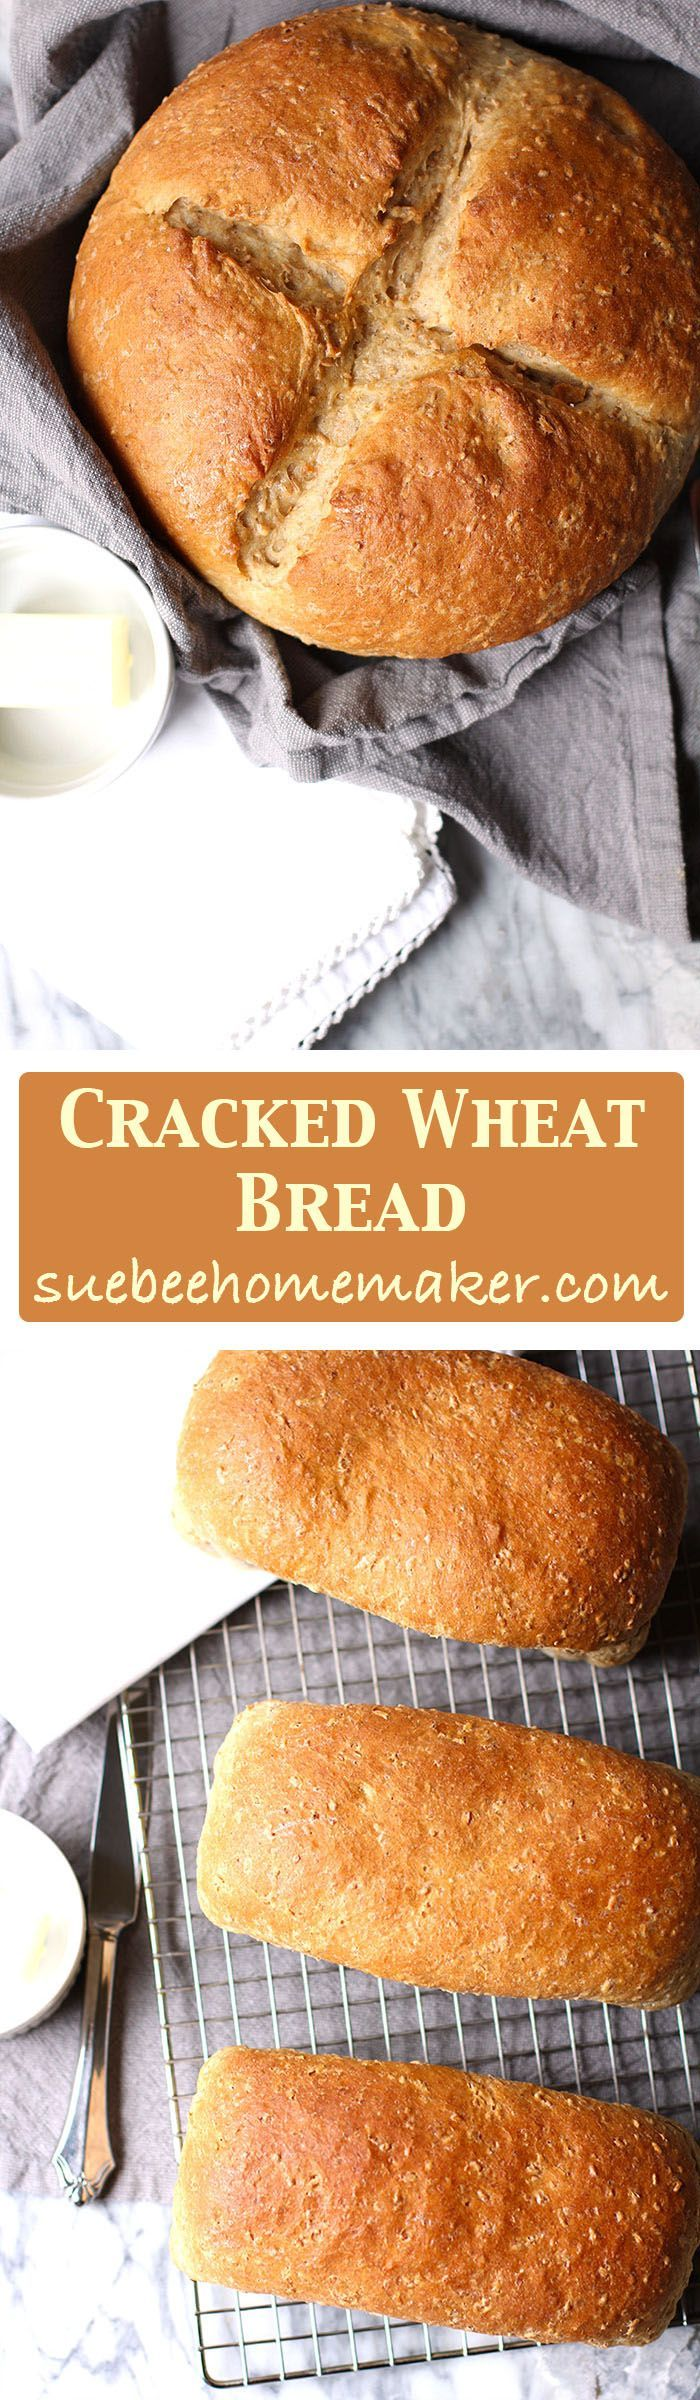 Cracked Wheat Bread is my momma's special recipe and is THE best! It's full of oats, cracked wheat, whole wheat, and honey -and is best toasted with butter!